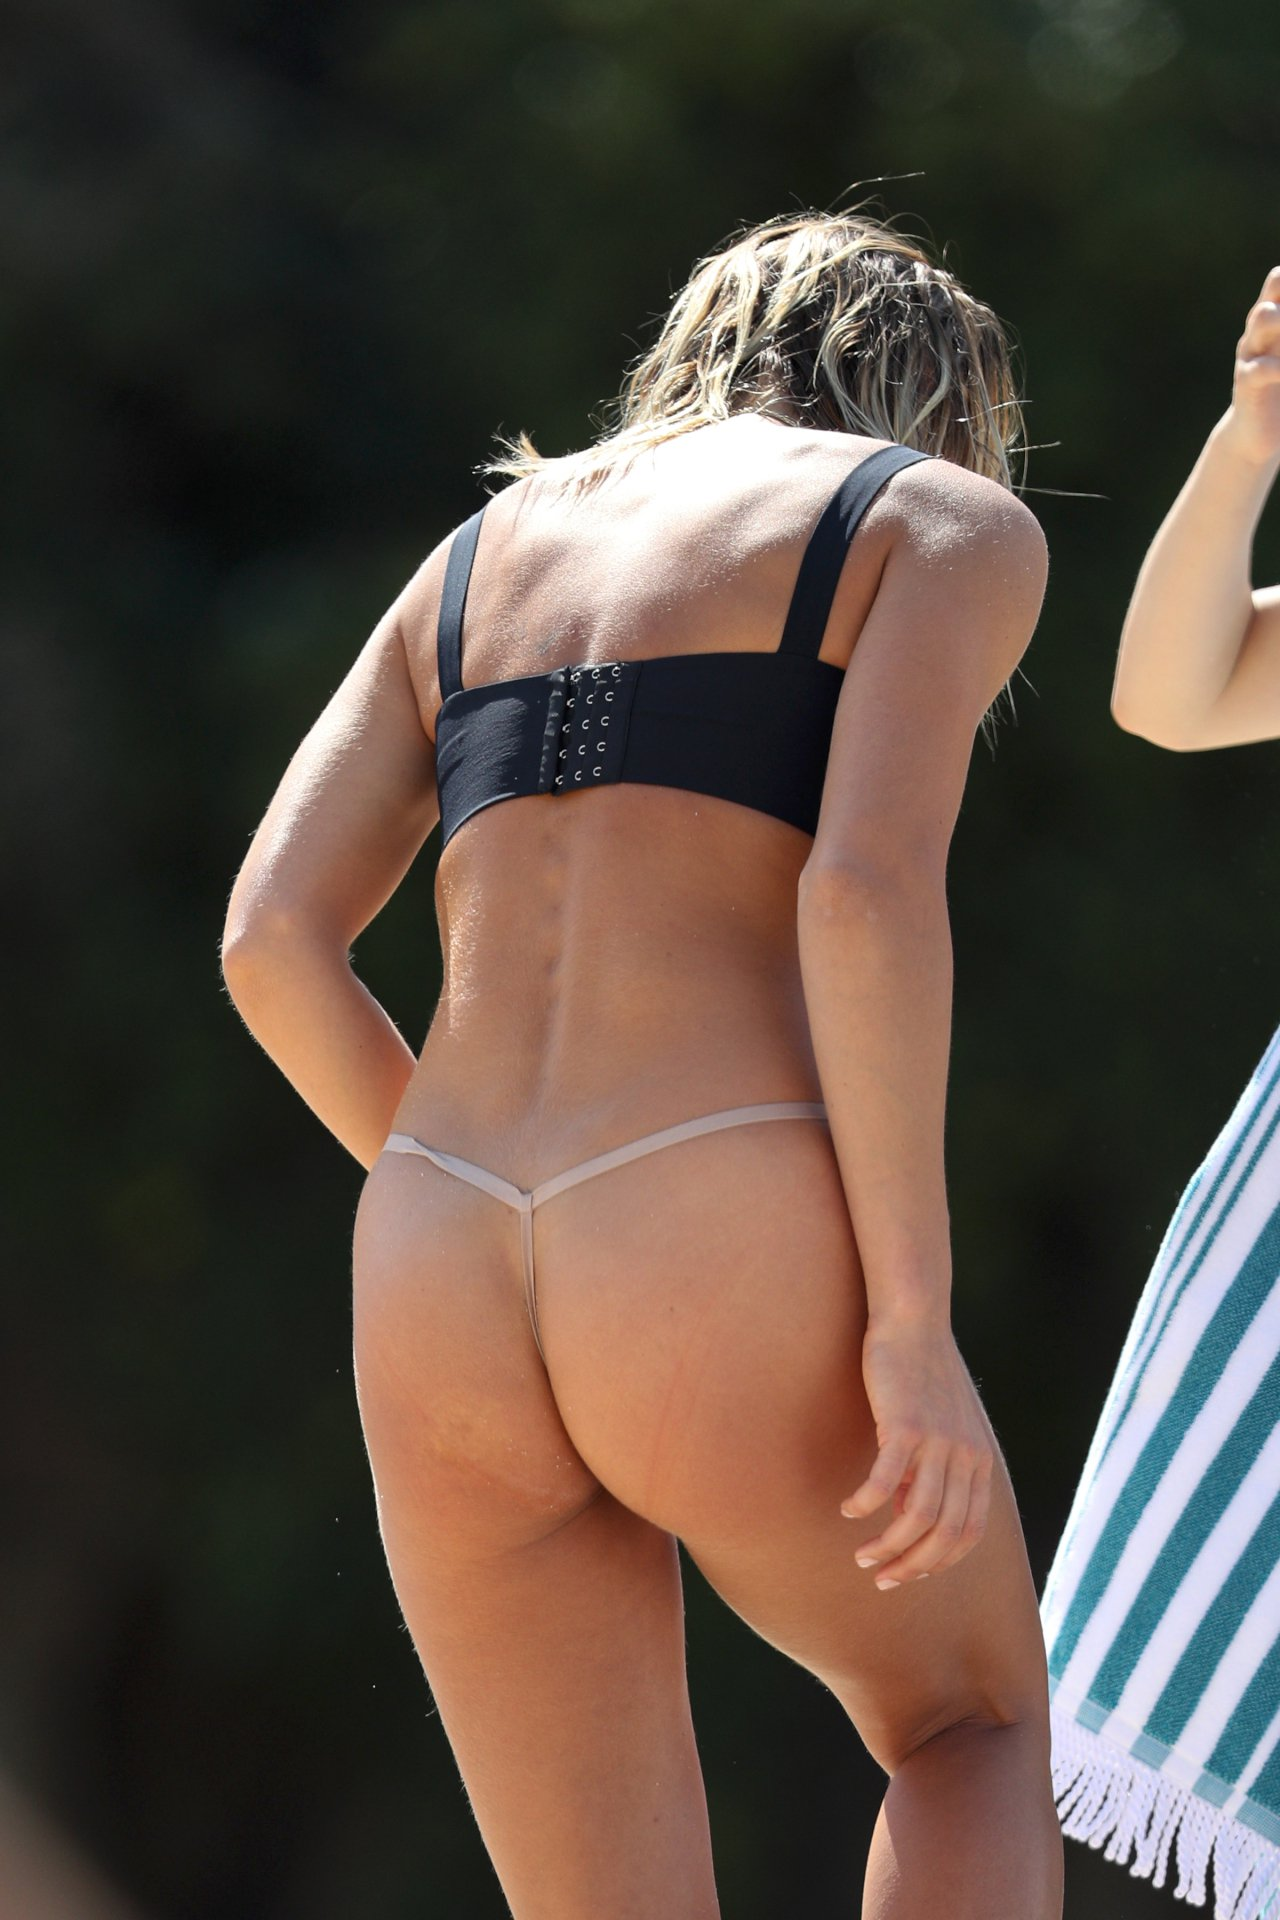 Caroline wozniacki hot ass in training